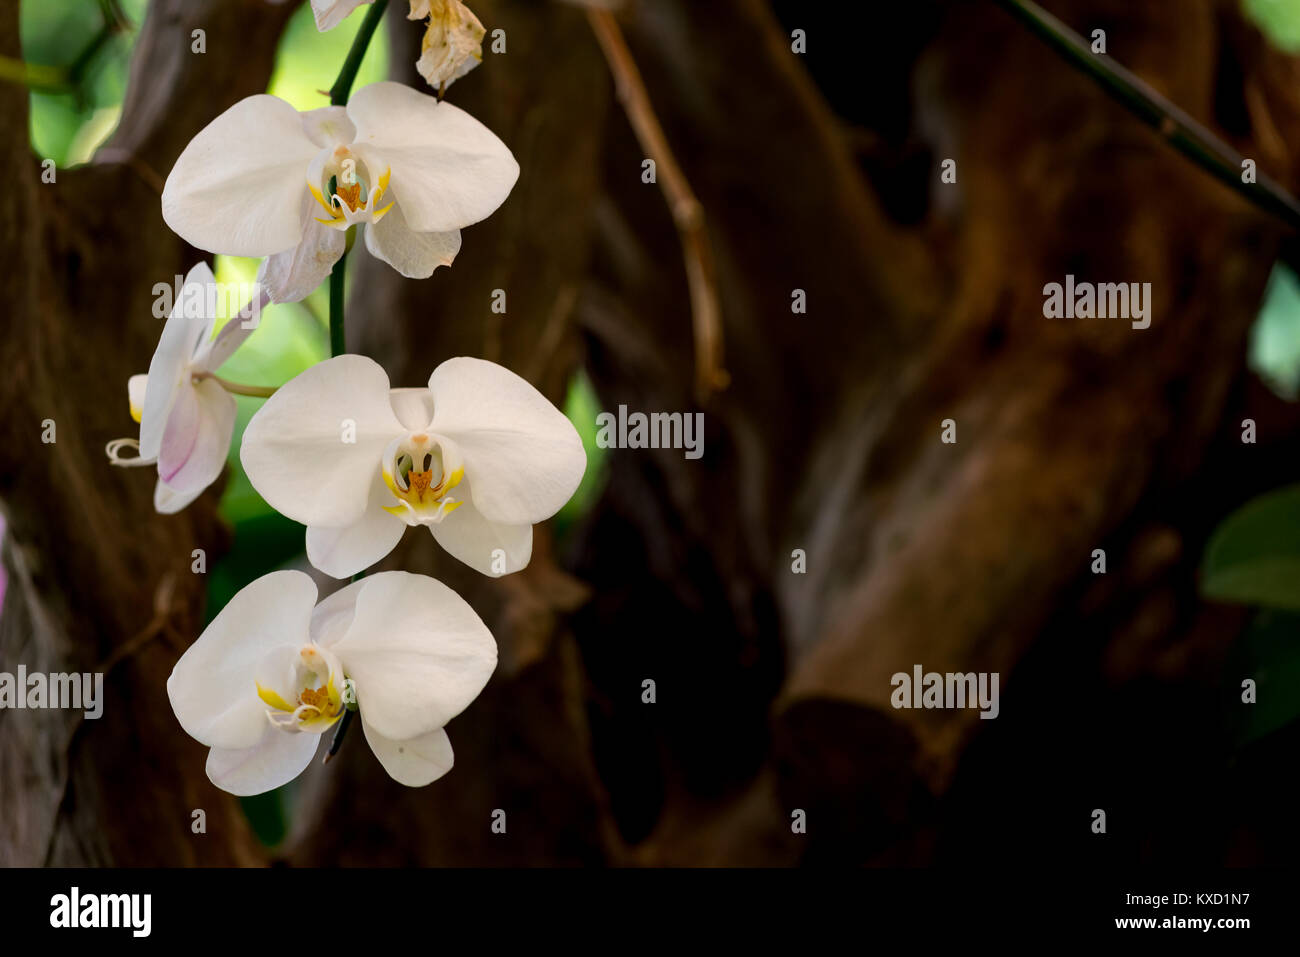 Fresh beautiful orchid flowers growing naturally with forest tree back ground. - Stock Image